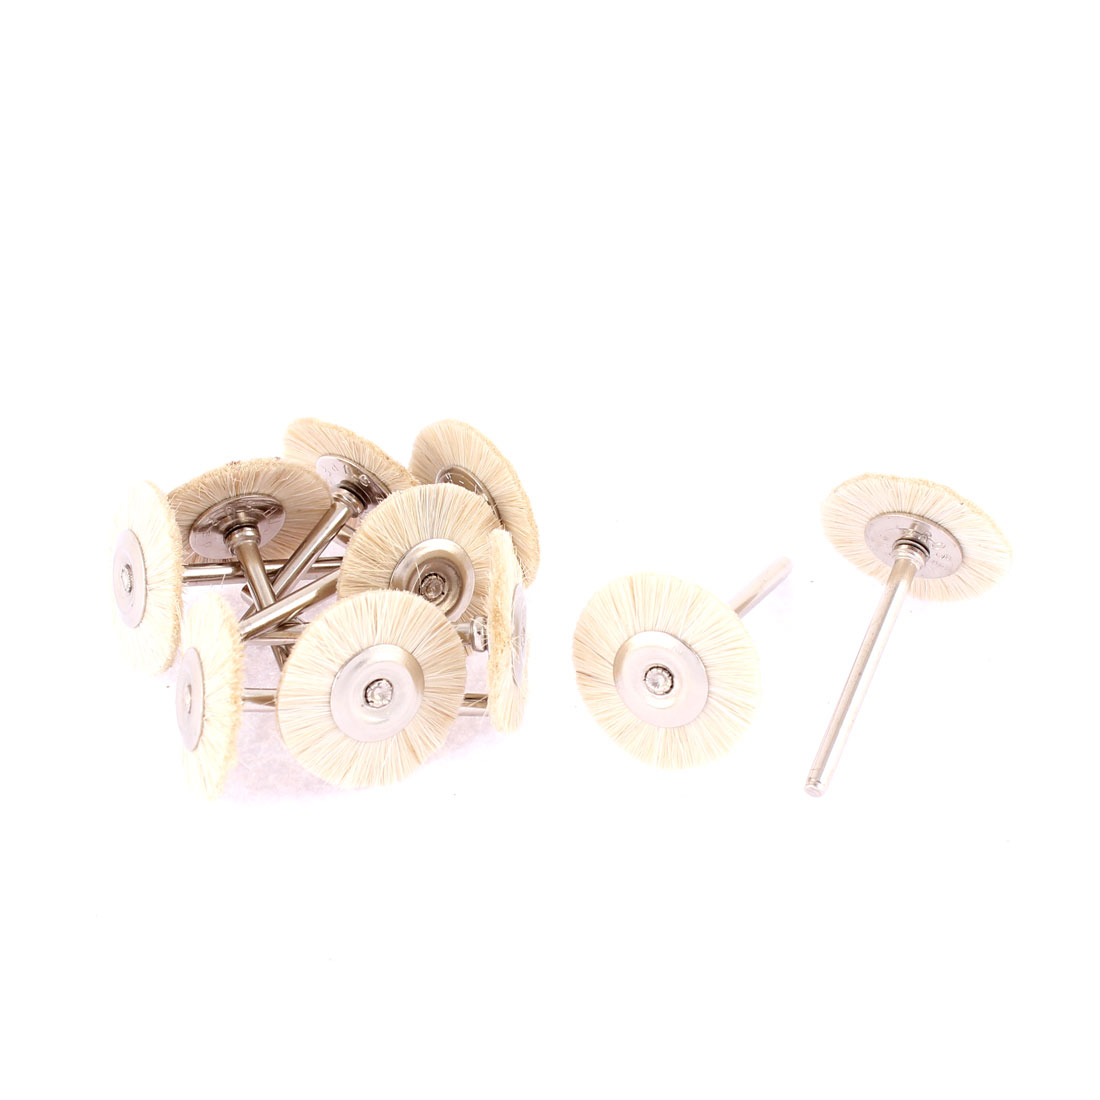 Rotary Tool 25mm Dia Wool Polishing Buffing Wheel Grinding Brushes 10pcs